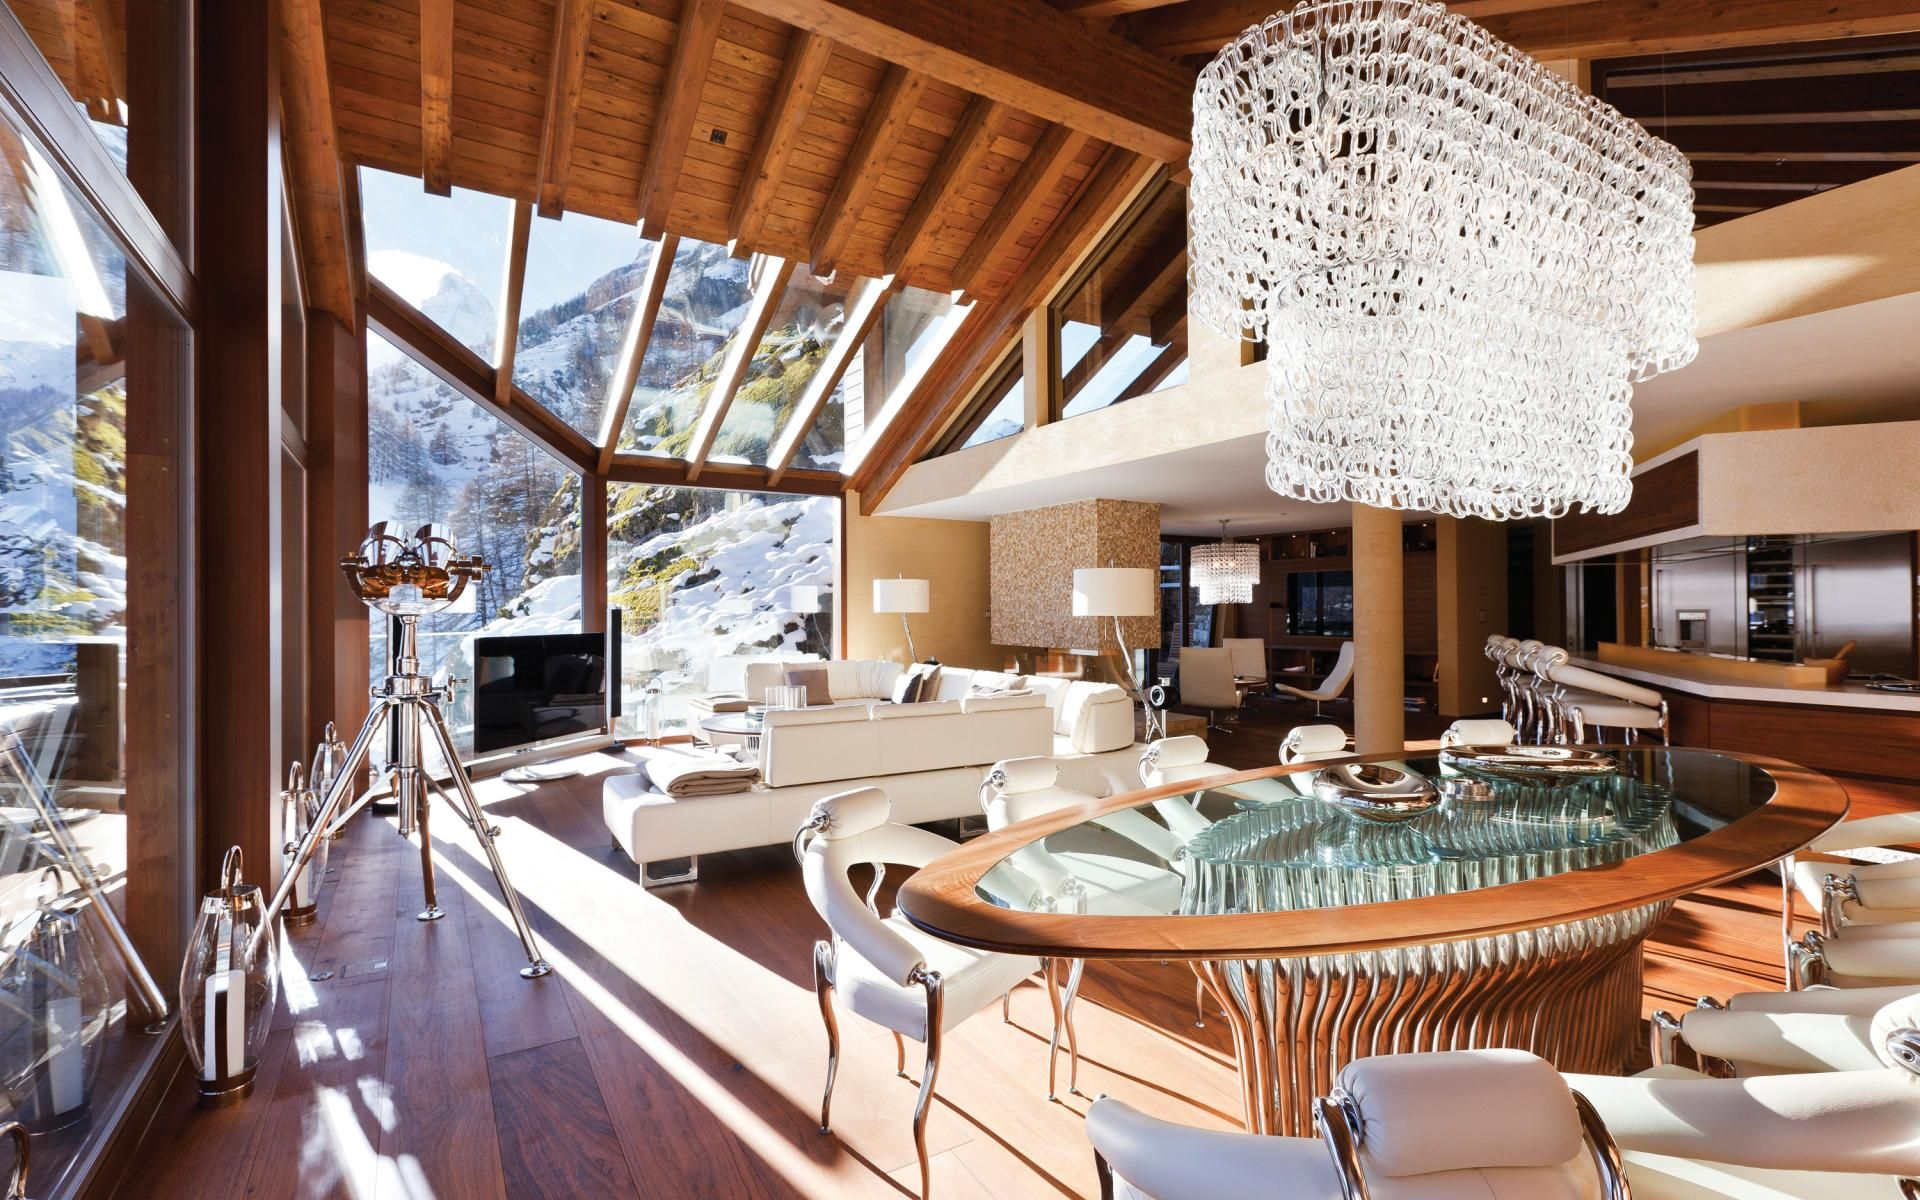 Luxury Ski Chalet Zermatt Peak Switzerland Photo 543